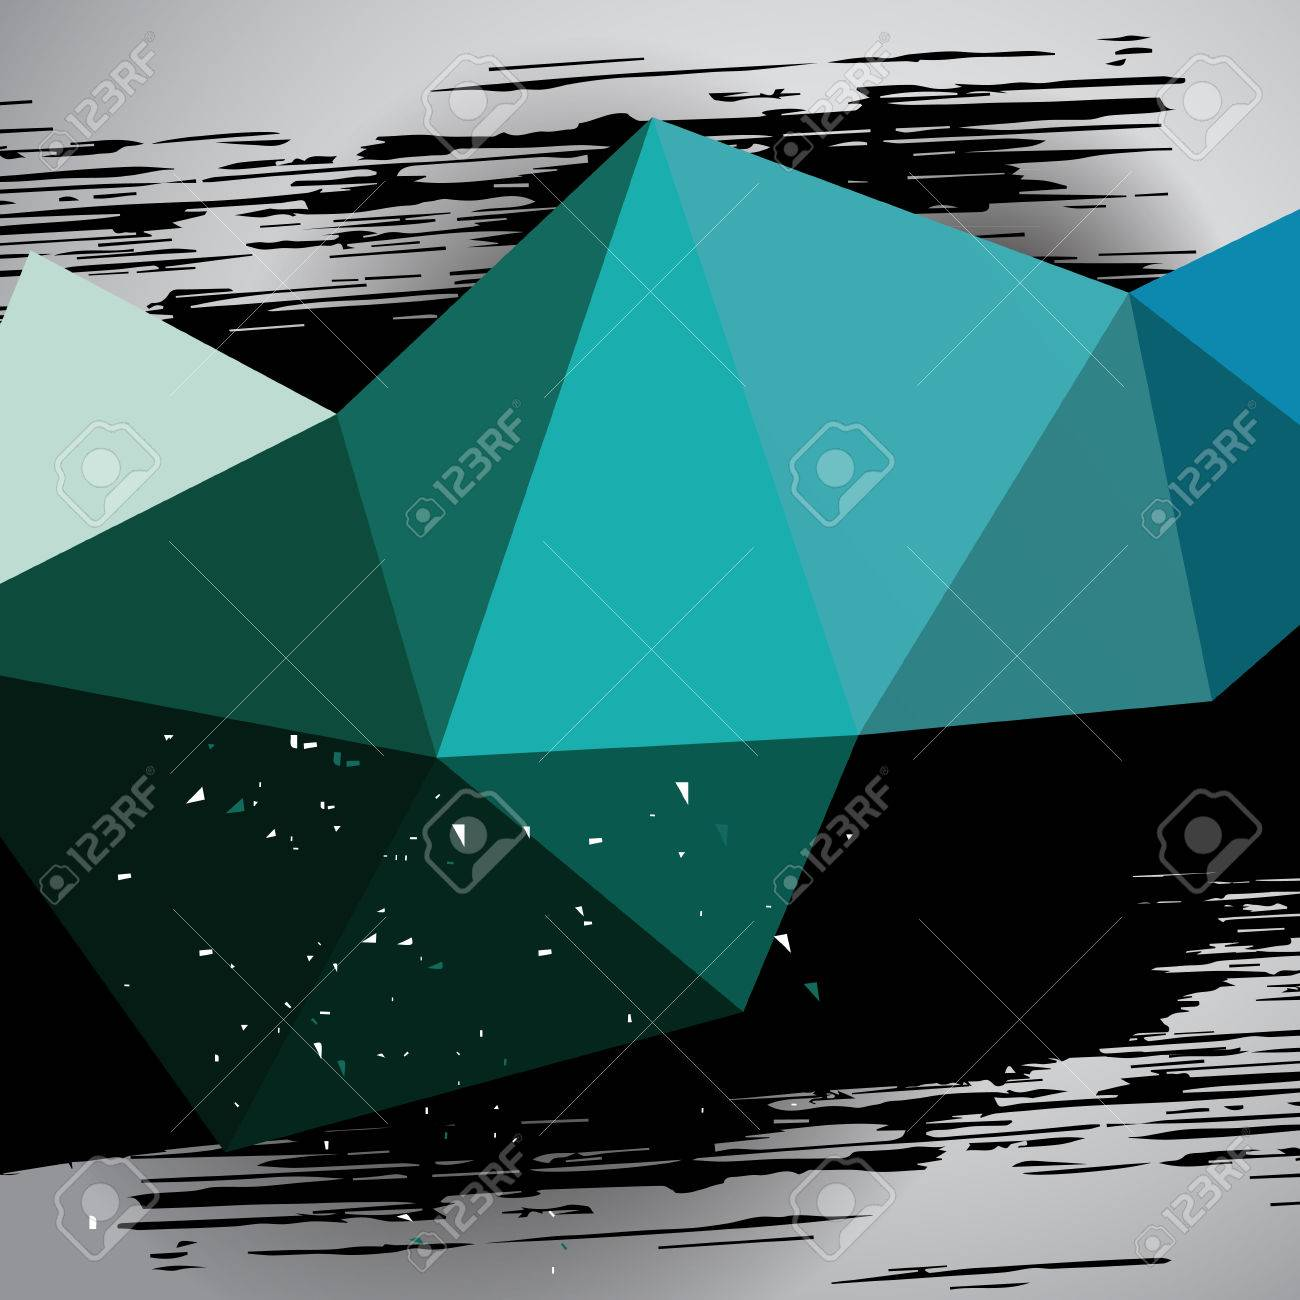 turquoise triangle mesh motion background with grunge black dab,